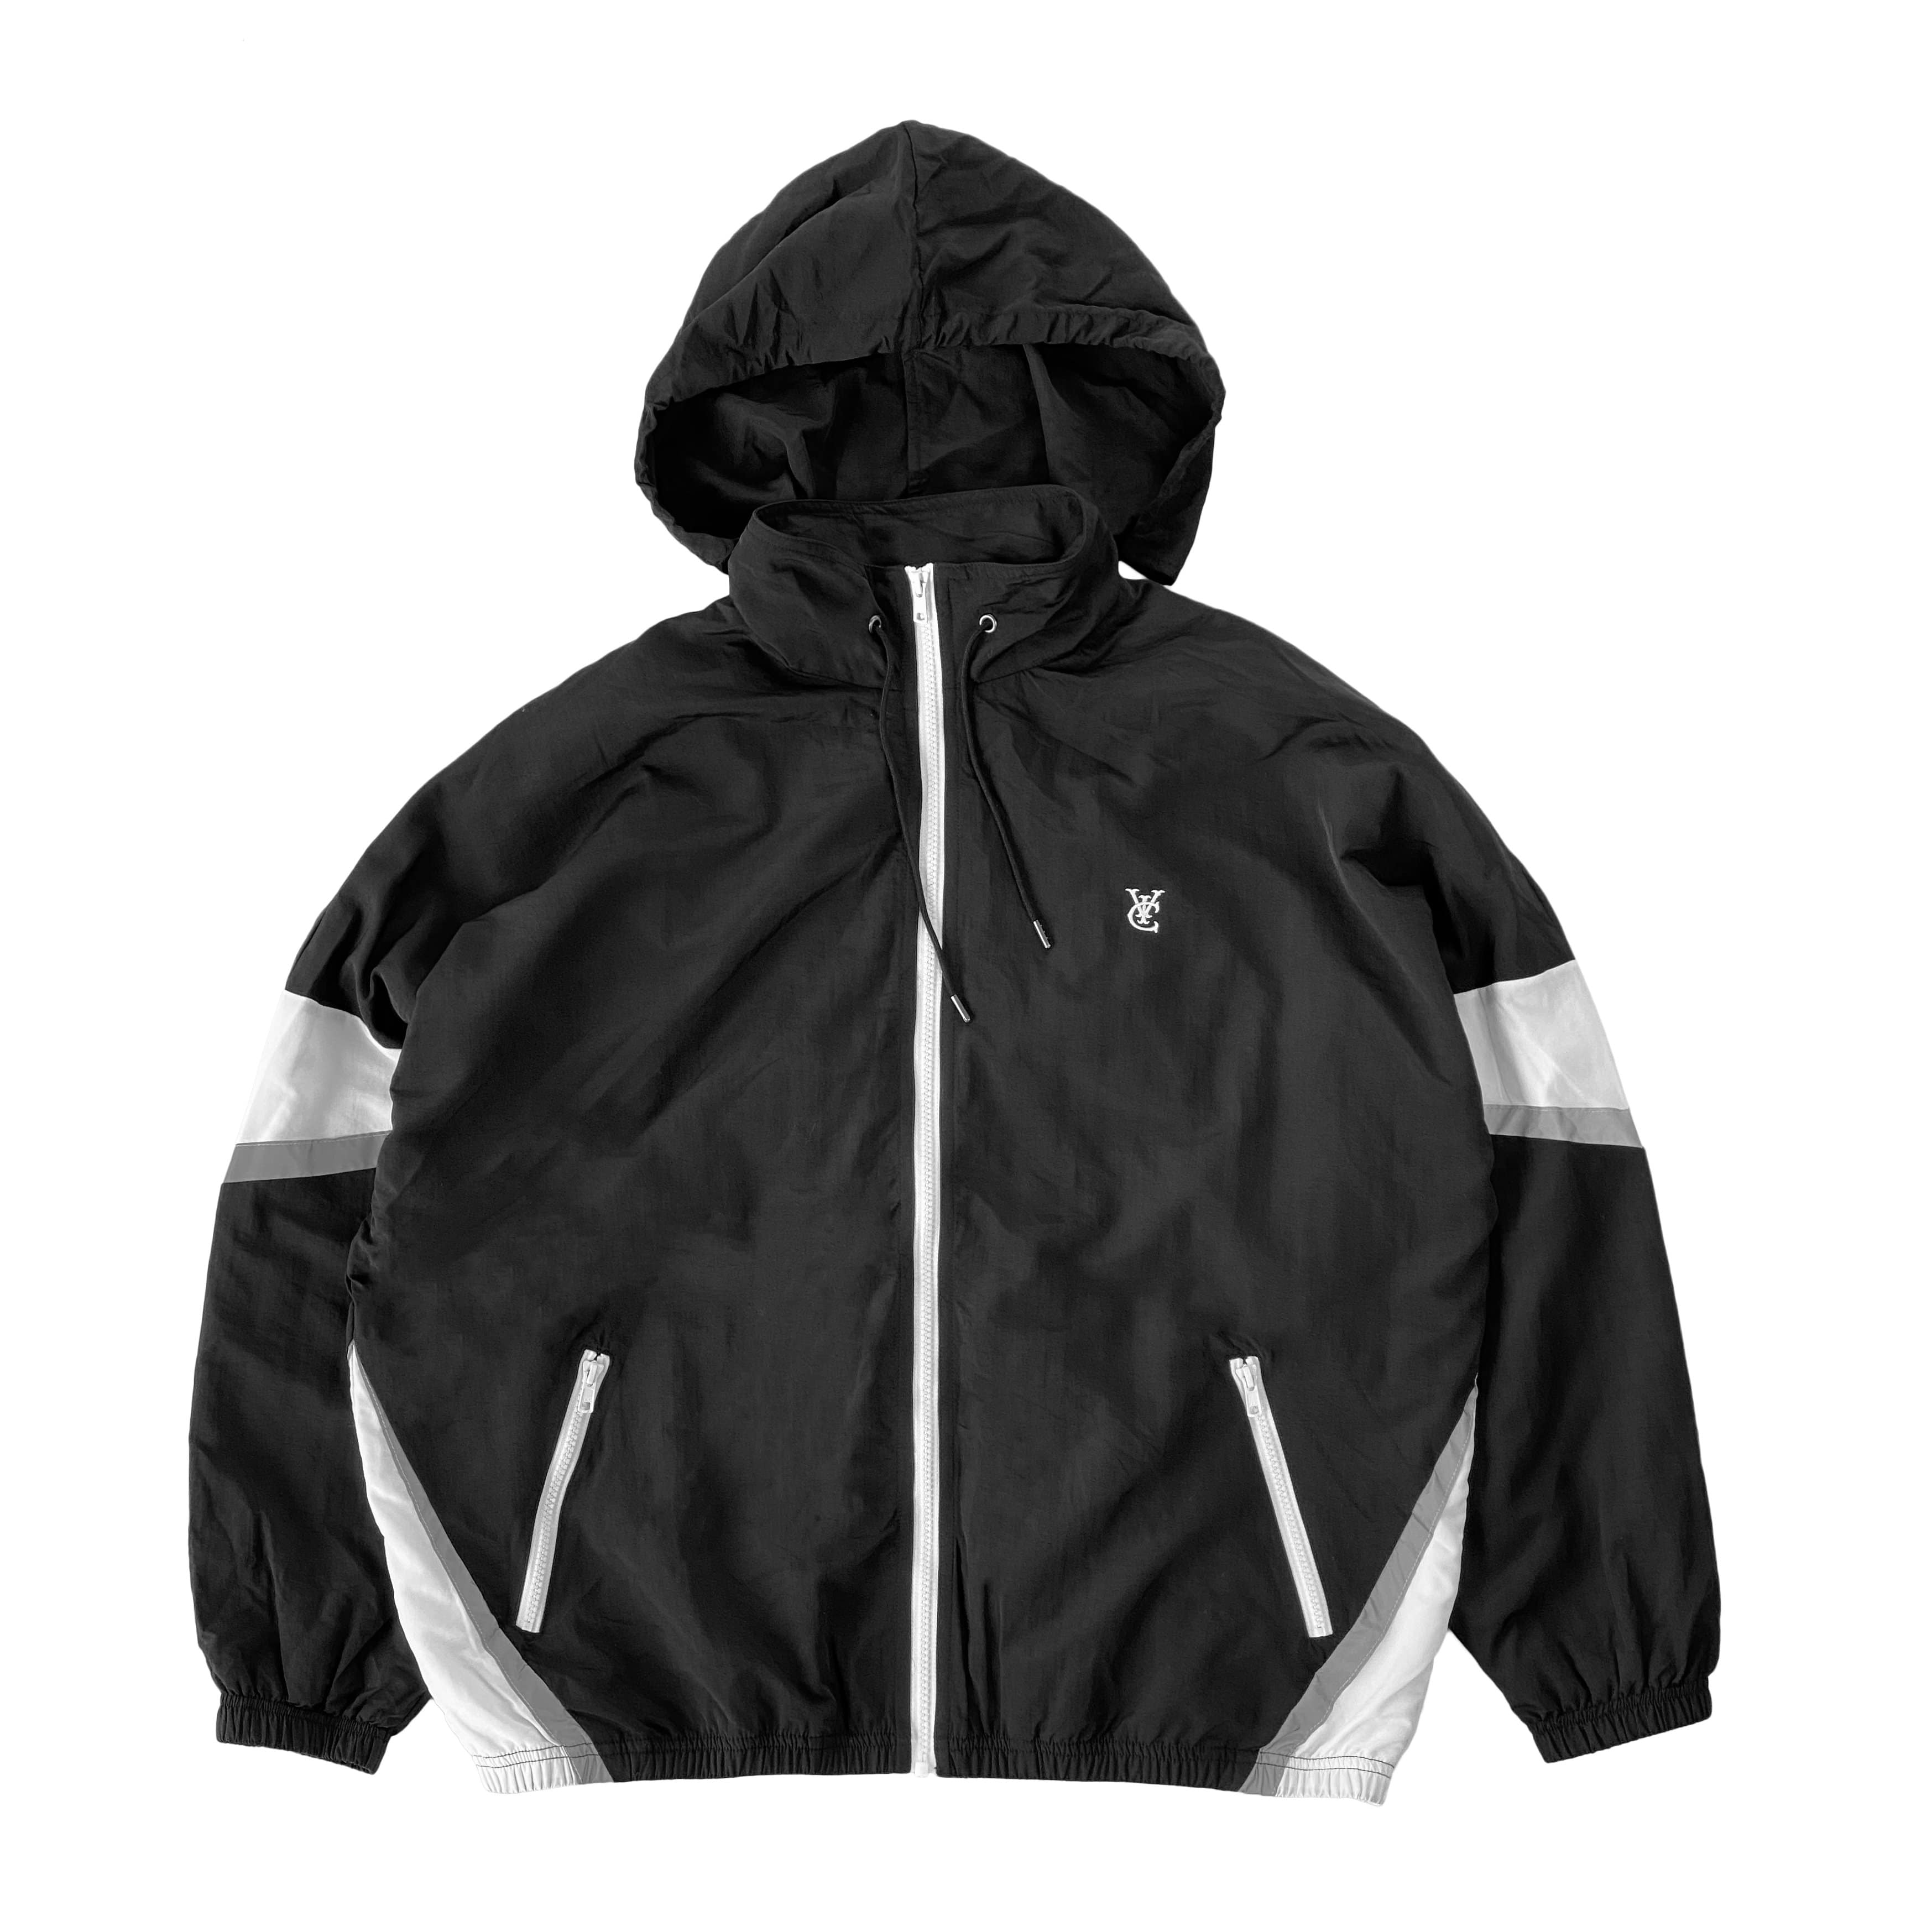 Feather Windbreaker Track Jacket by NZ skate and streetwear brand VIC Apparel. Classic relaxed fit. Shower proof. American classic vintage 80s & 90s sportswear style. Drawcord-adjustable, packable hood can be stowed in collar. Reflective detailing on sleeves & waist. Logo embroidery